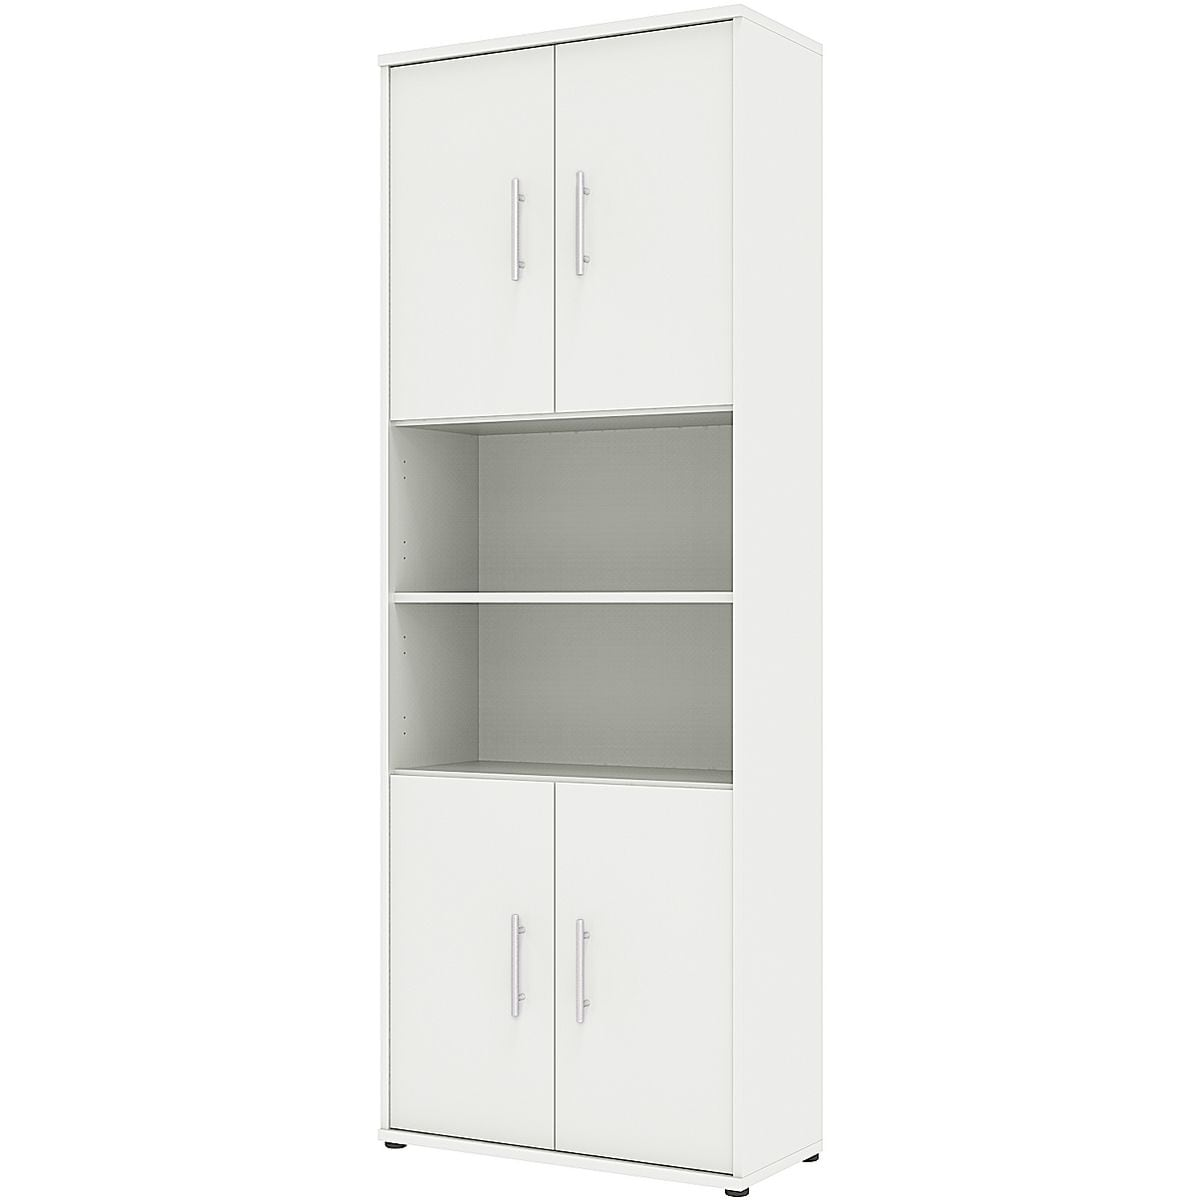 mehrzweckschrank b rocombi 2 80 cm breit 6 oh bei otto office g nstig kaufen. Black Bedroom Furniture Sets. Home Design Ideas